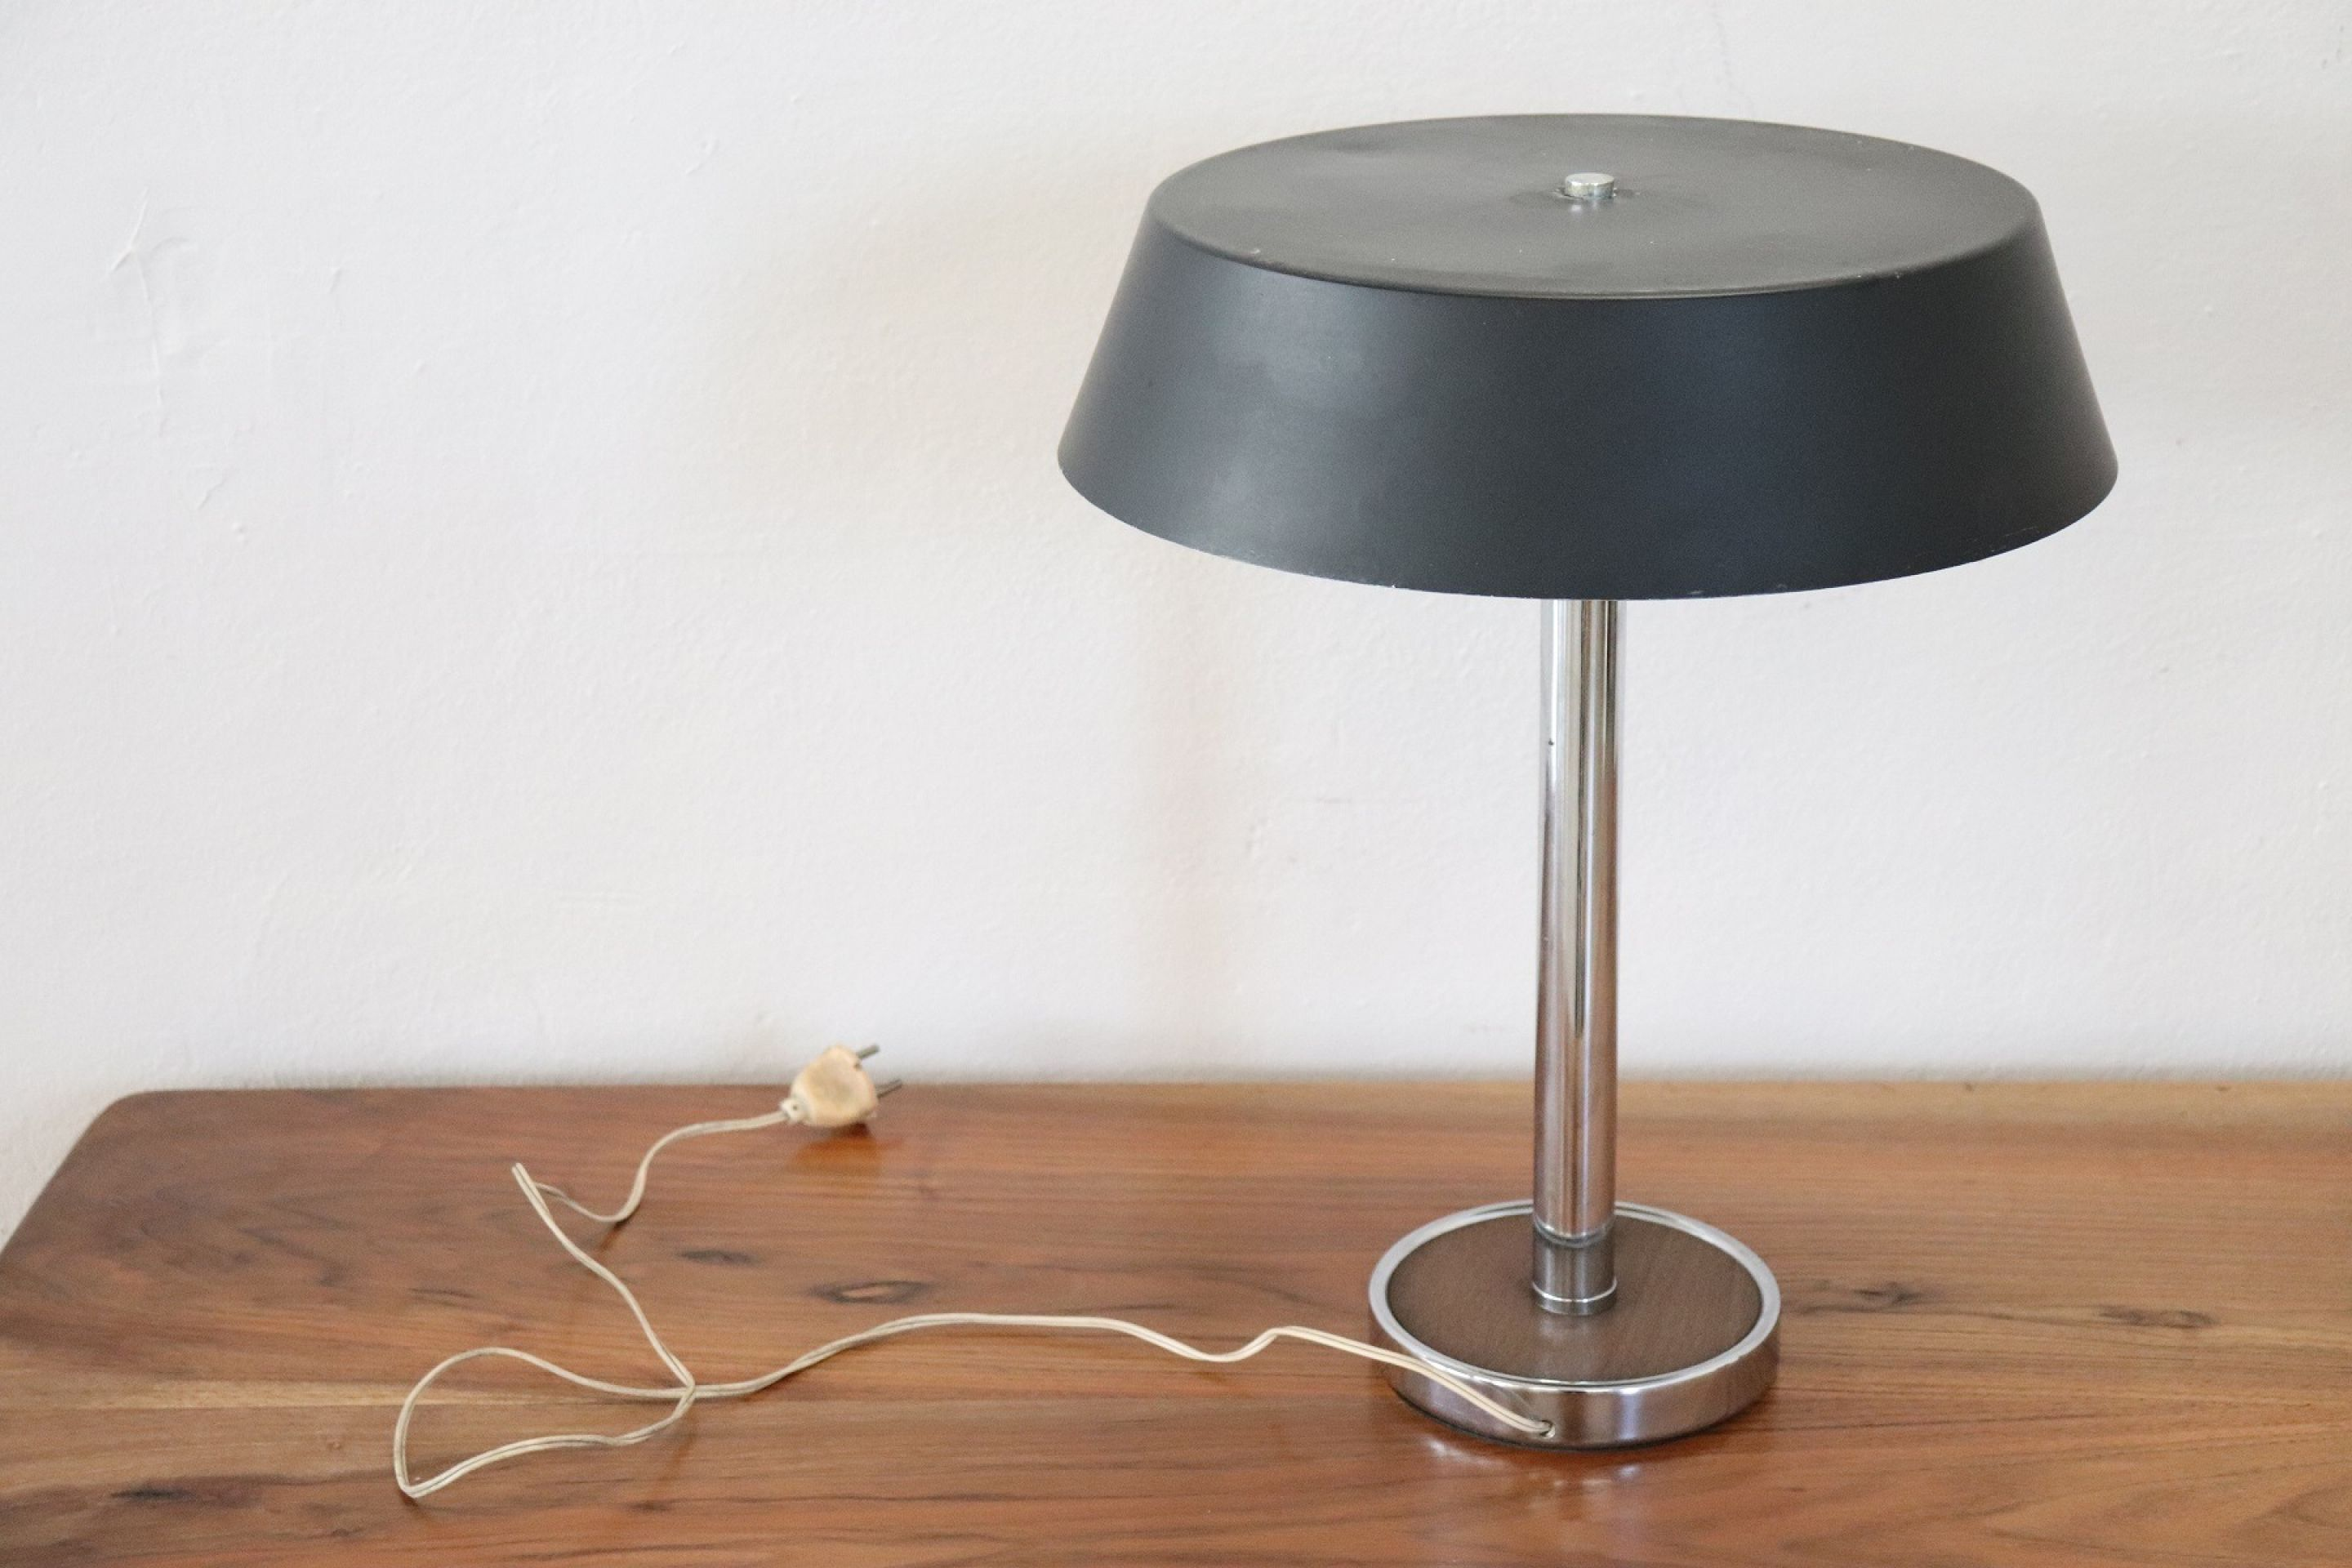 20th Century Italian Design Aluminium Table Lamp, 1960s